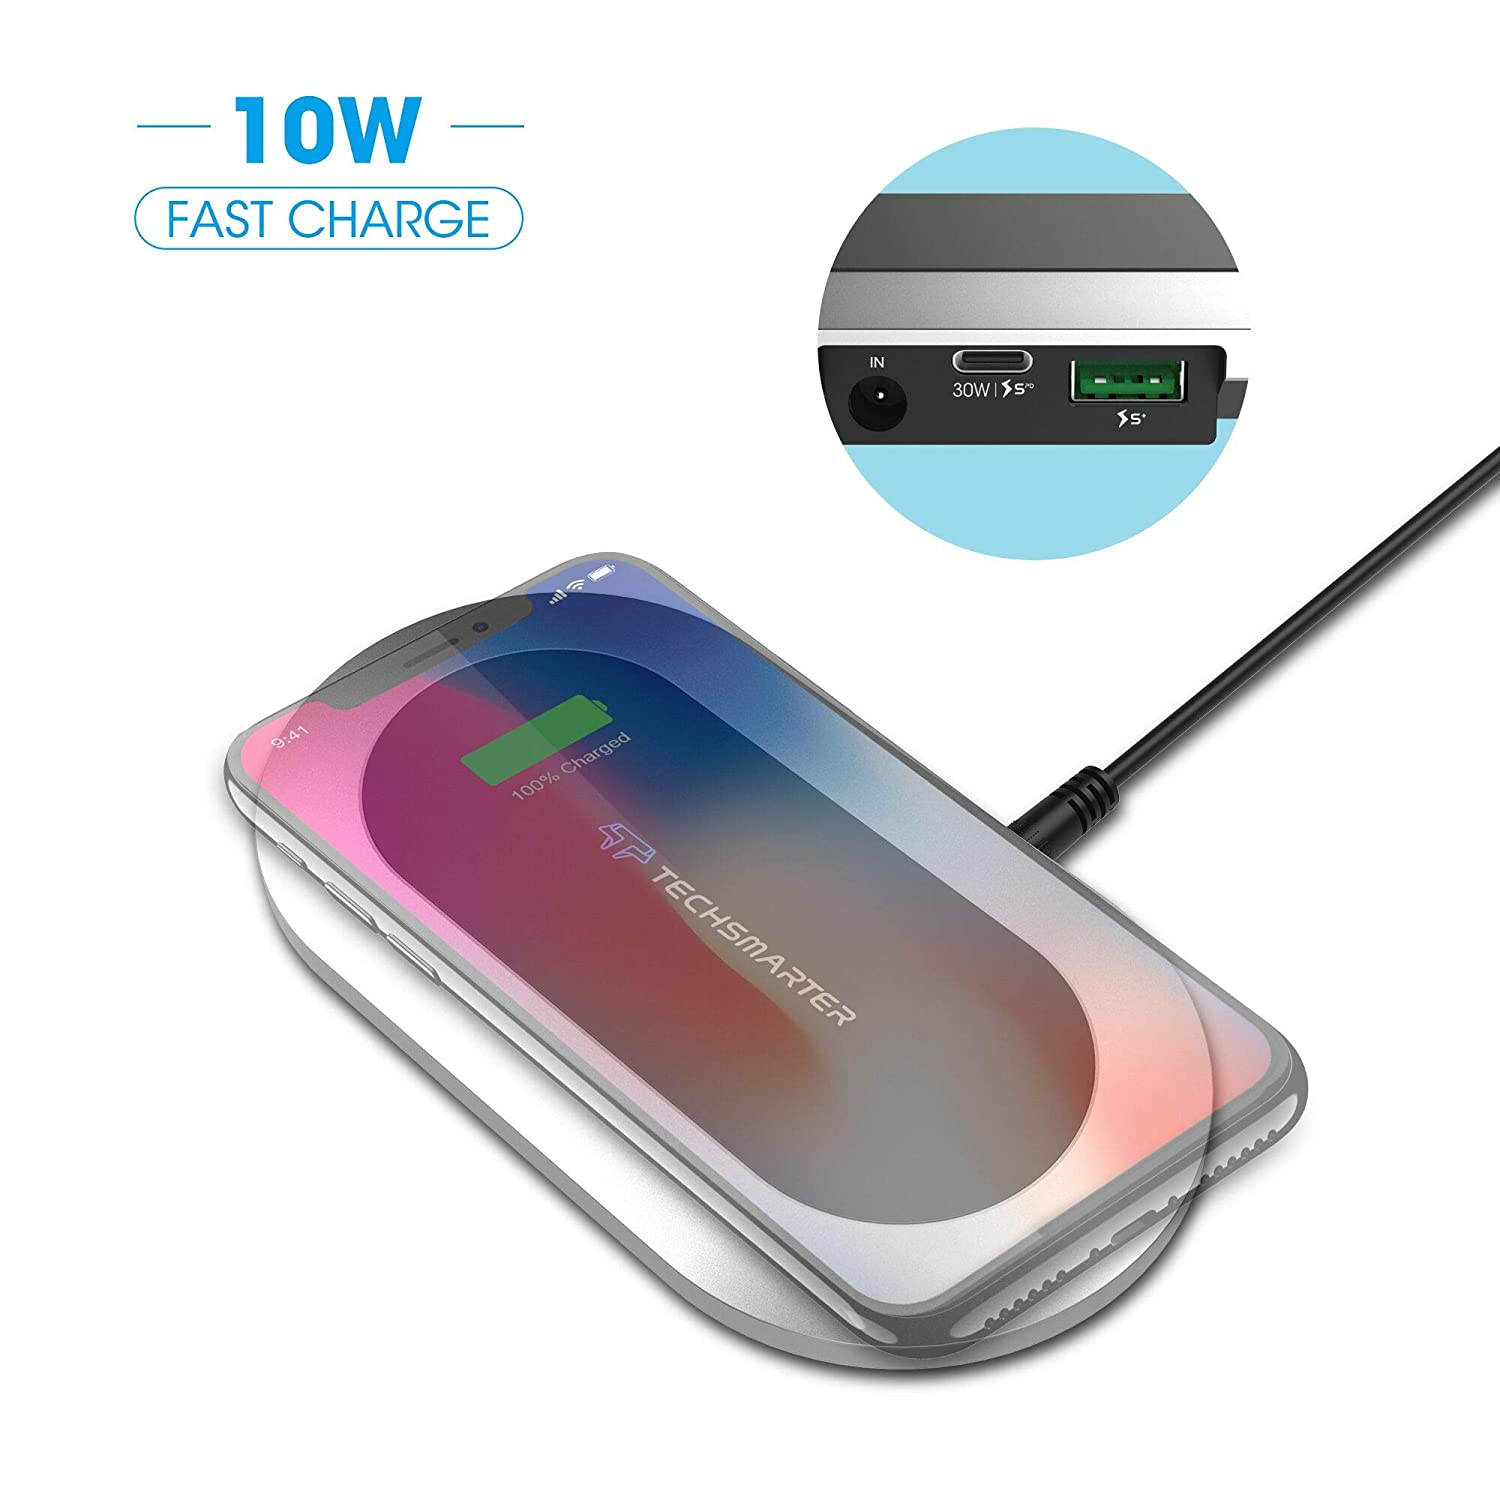 Samsung iPhone for USB-C Devices Smartphone Techsmarter 3-in-1 Wireless Charging Station iPad Multiple Phones Devices with TS+ USB Port 30W Power Delivery Ports /& Wireless Charging Pad HTC LG